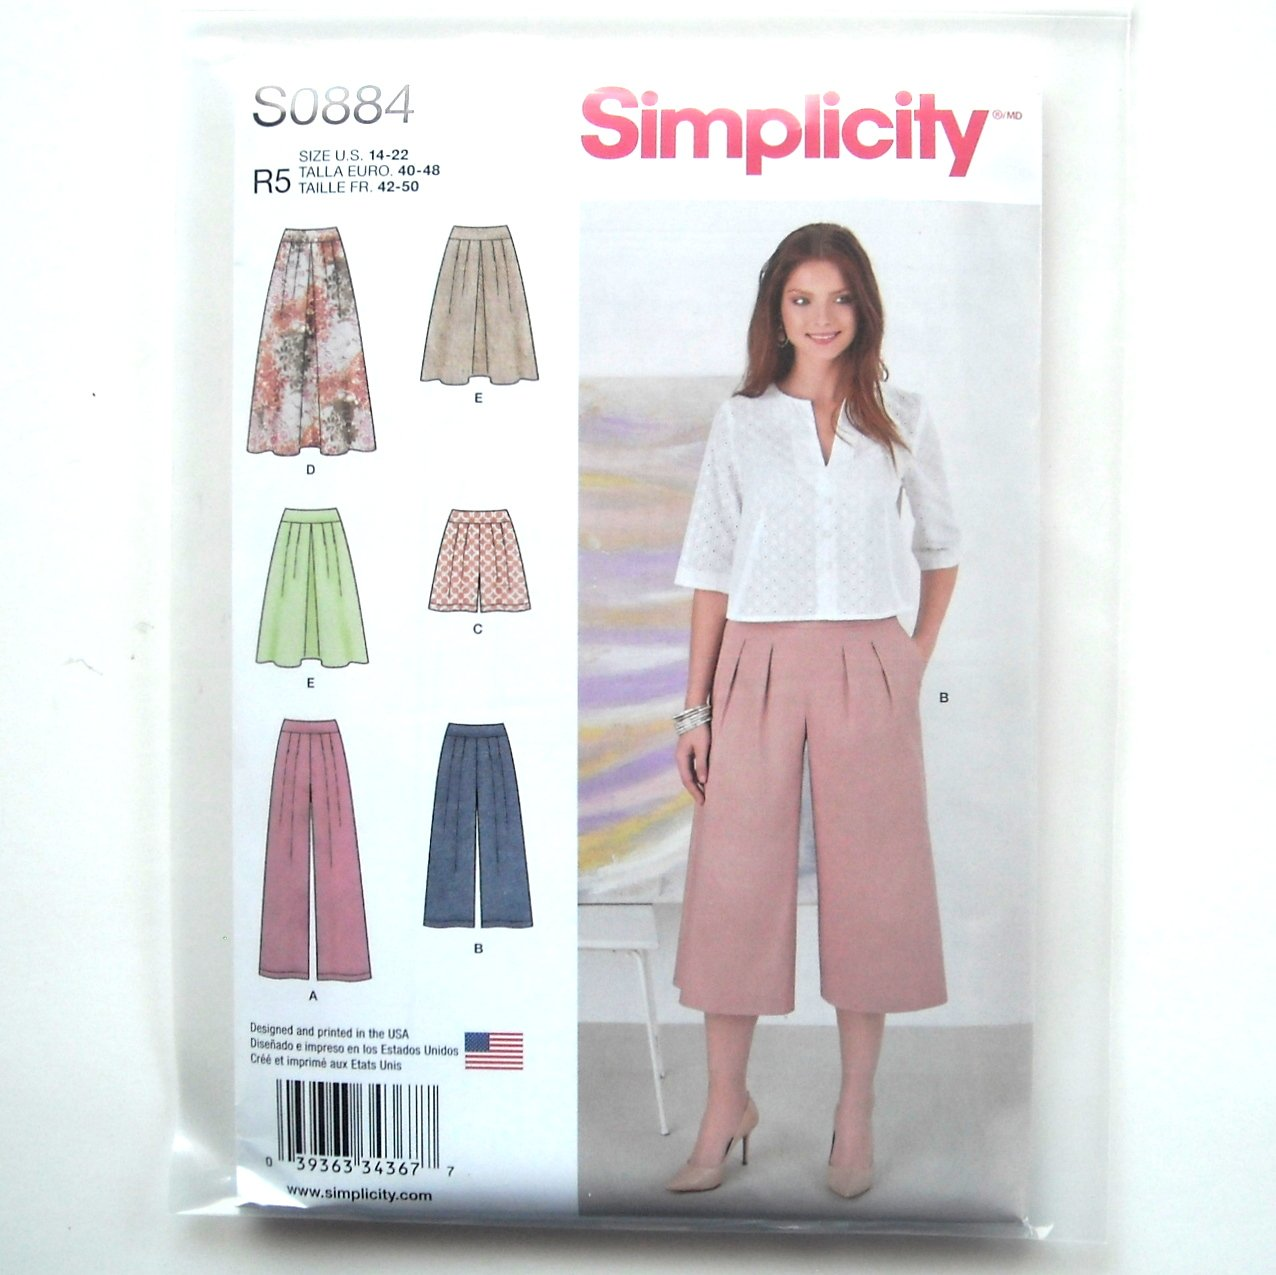 Misses Skirt Pants Shorts 14 16 18 20 22 Simplicity Sewing Pattern S0884